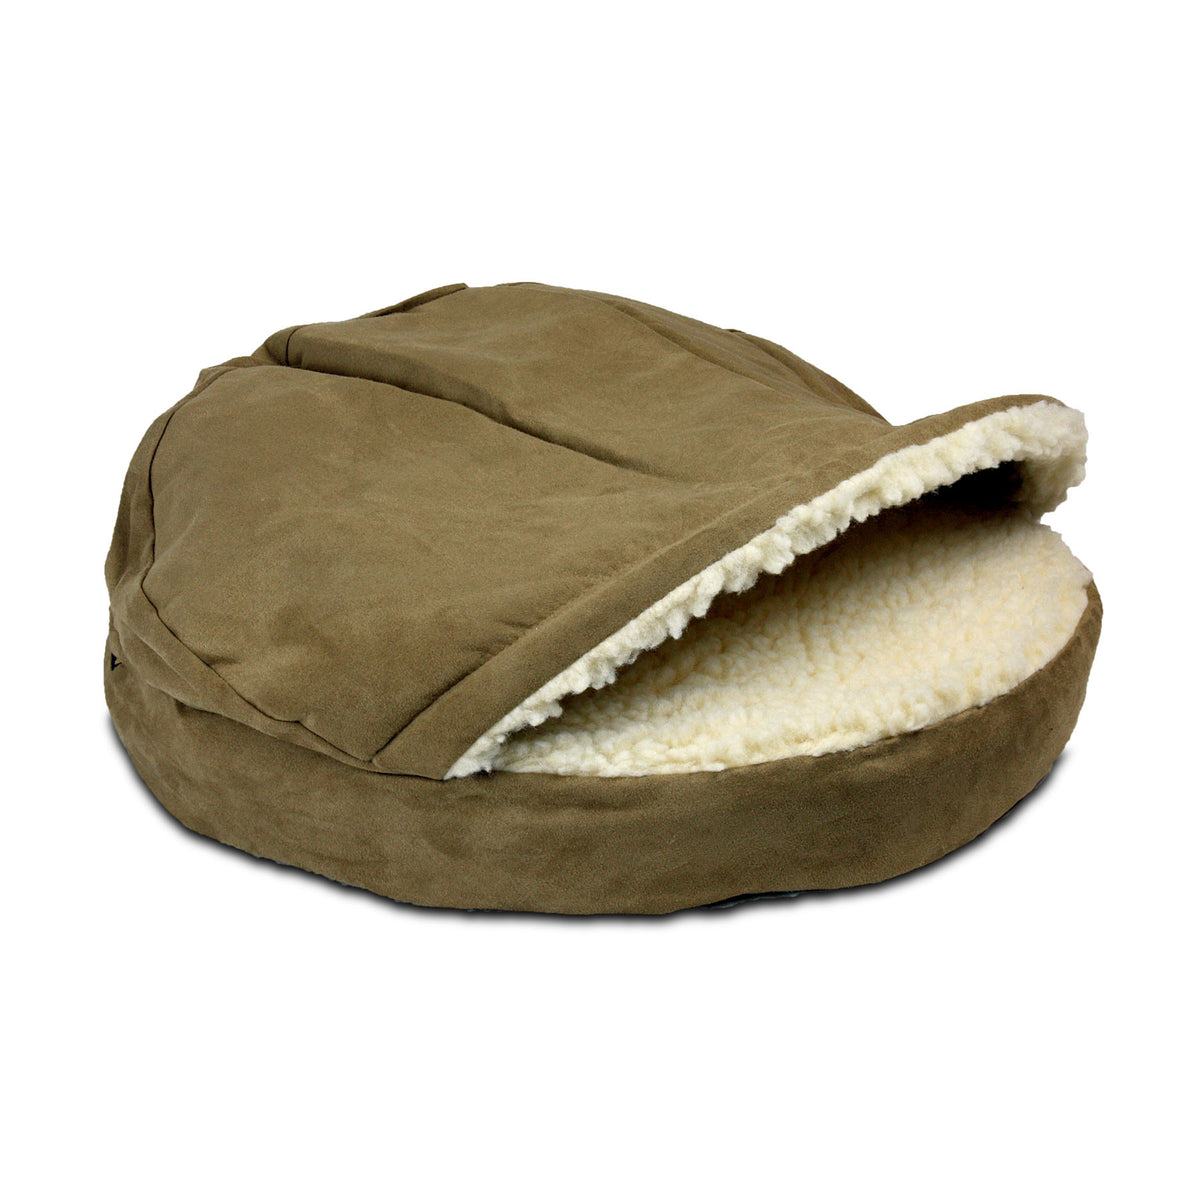 Snoozer Luxury Orthopedic Cozy Cave - Camel